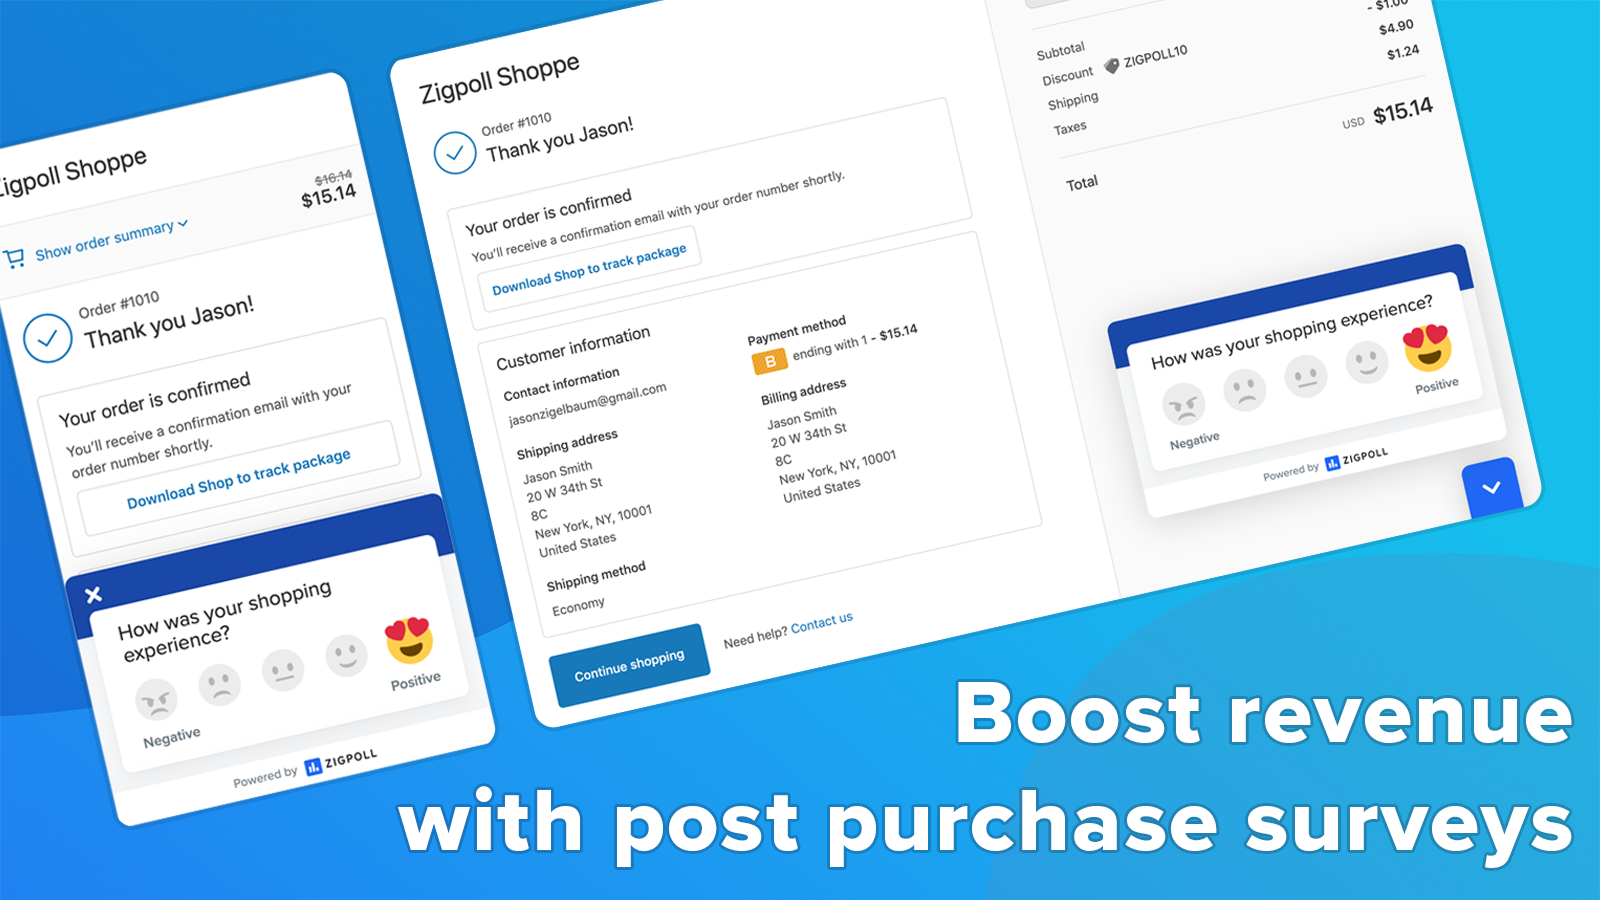 Boost revenue with post purchase surveys.